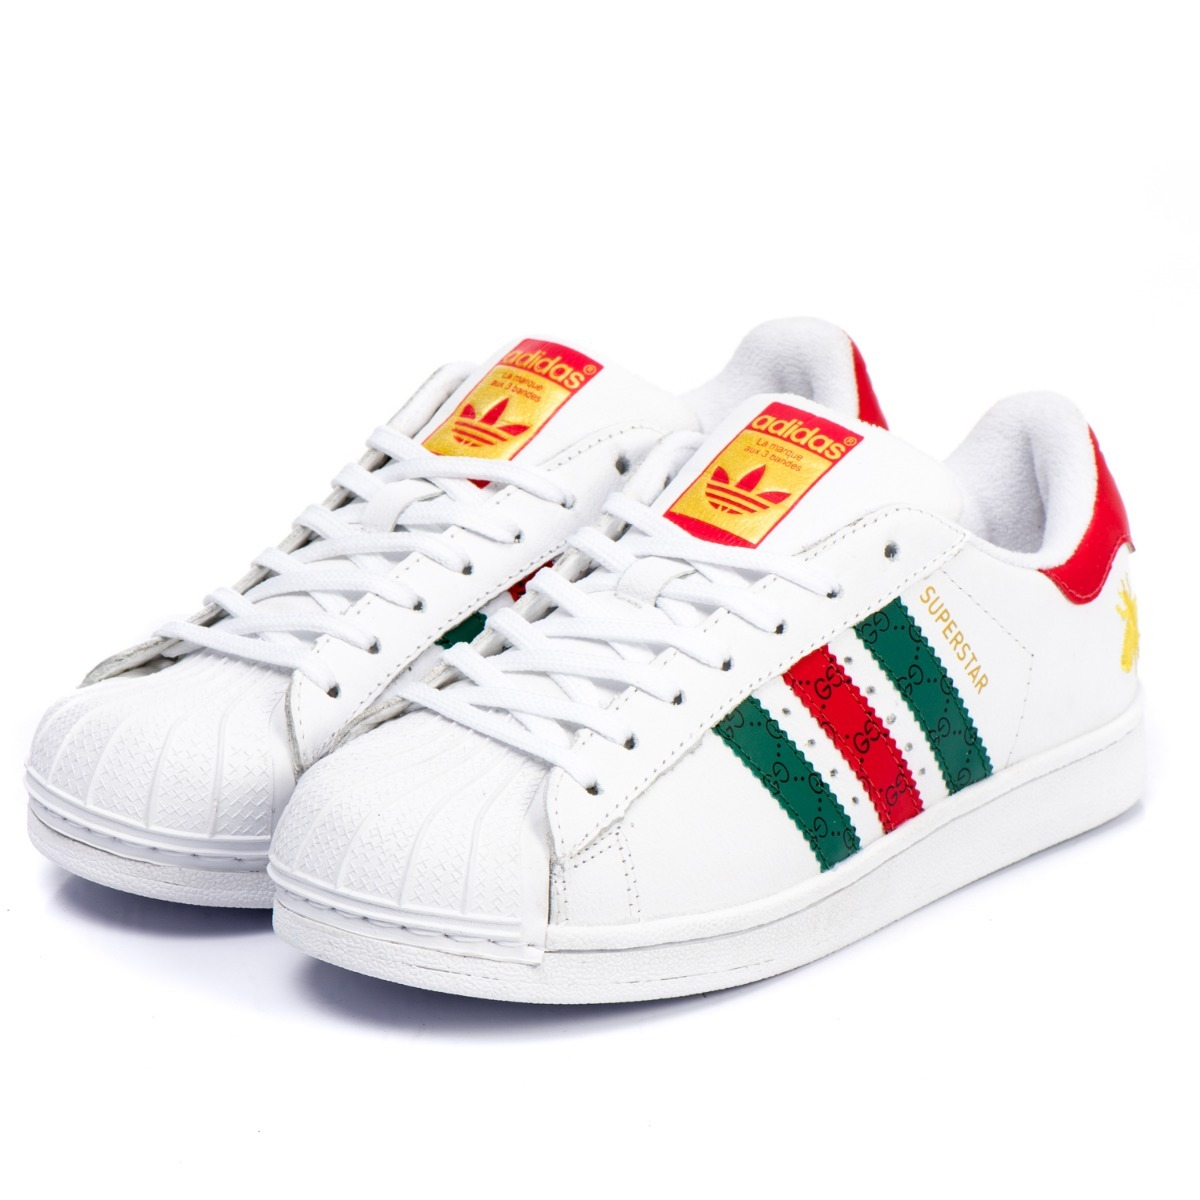 0abe520f9e0b3 Tênis adidas Originals Superstar Foundation - Gucci - R$ 179,90 em ...